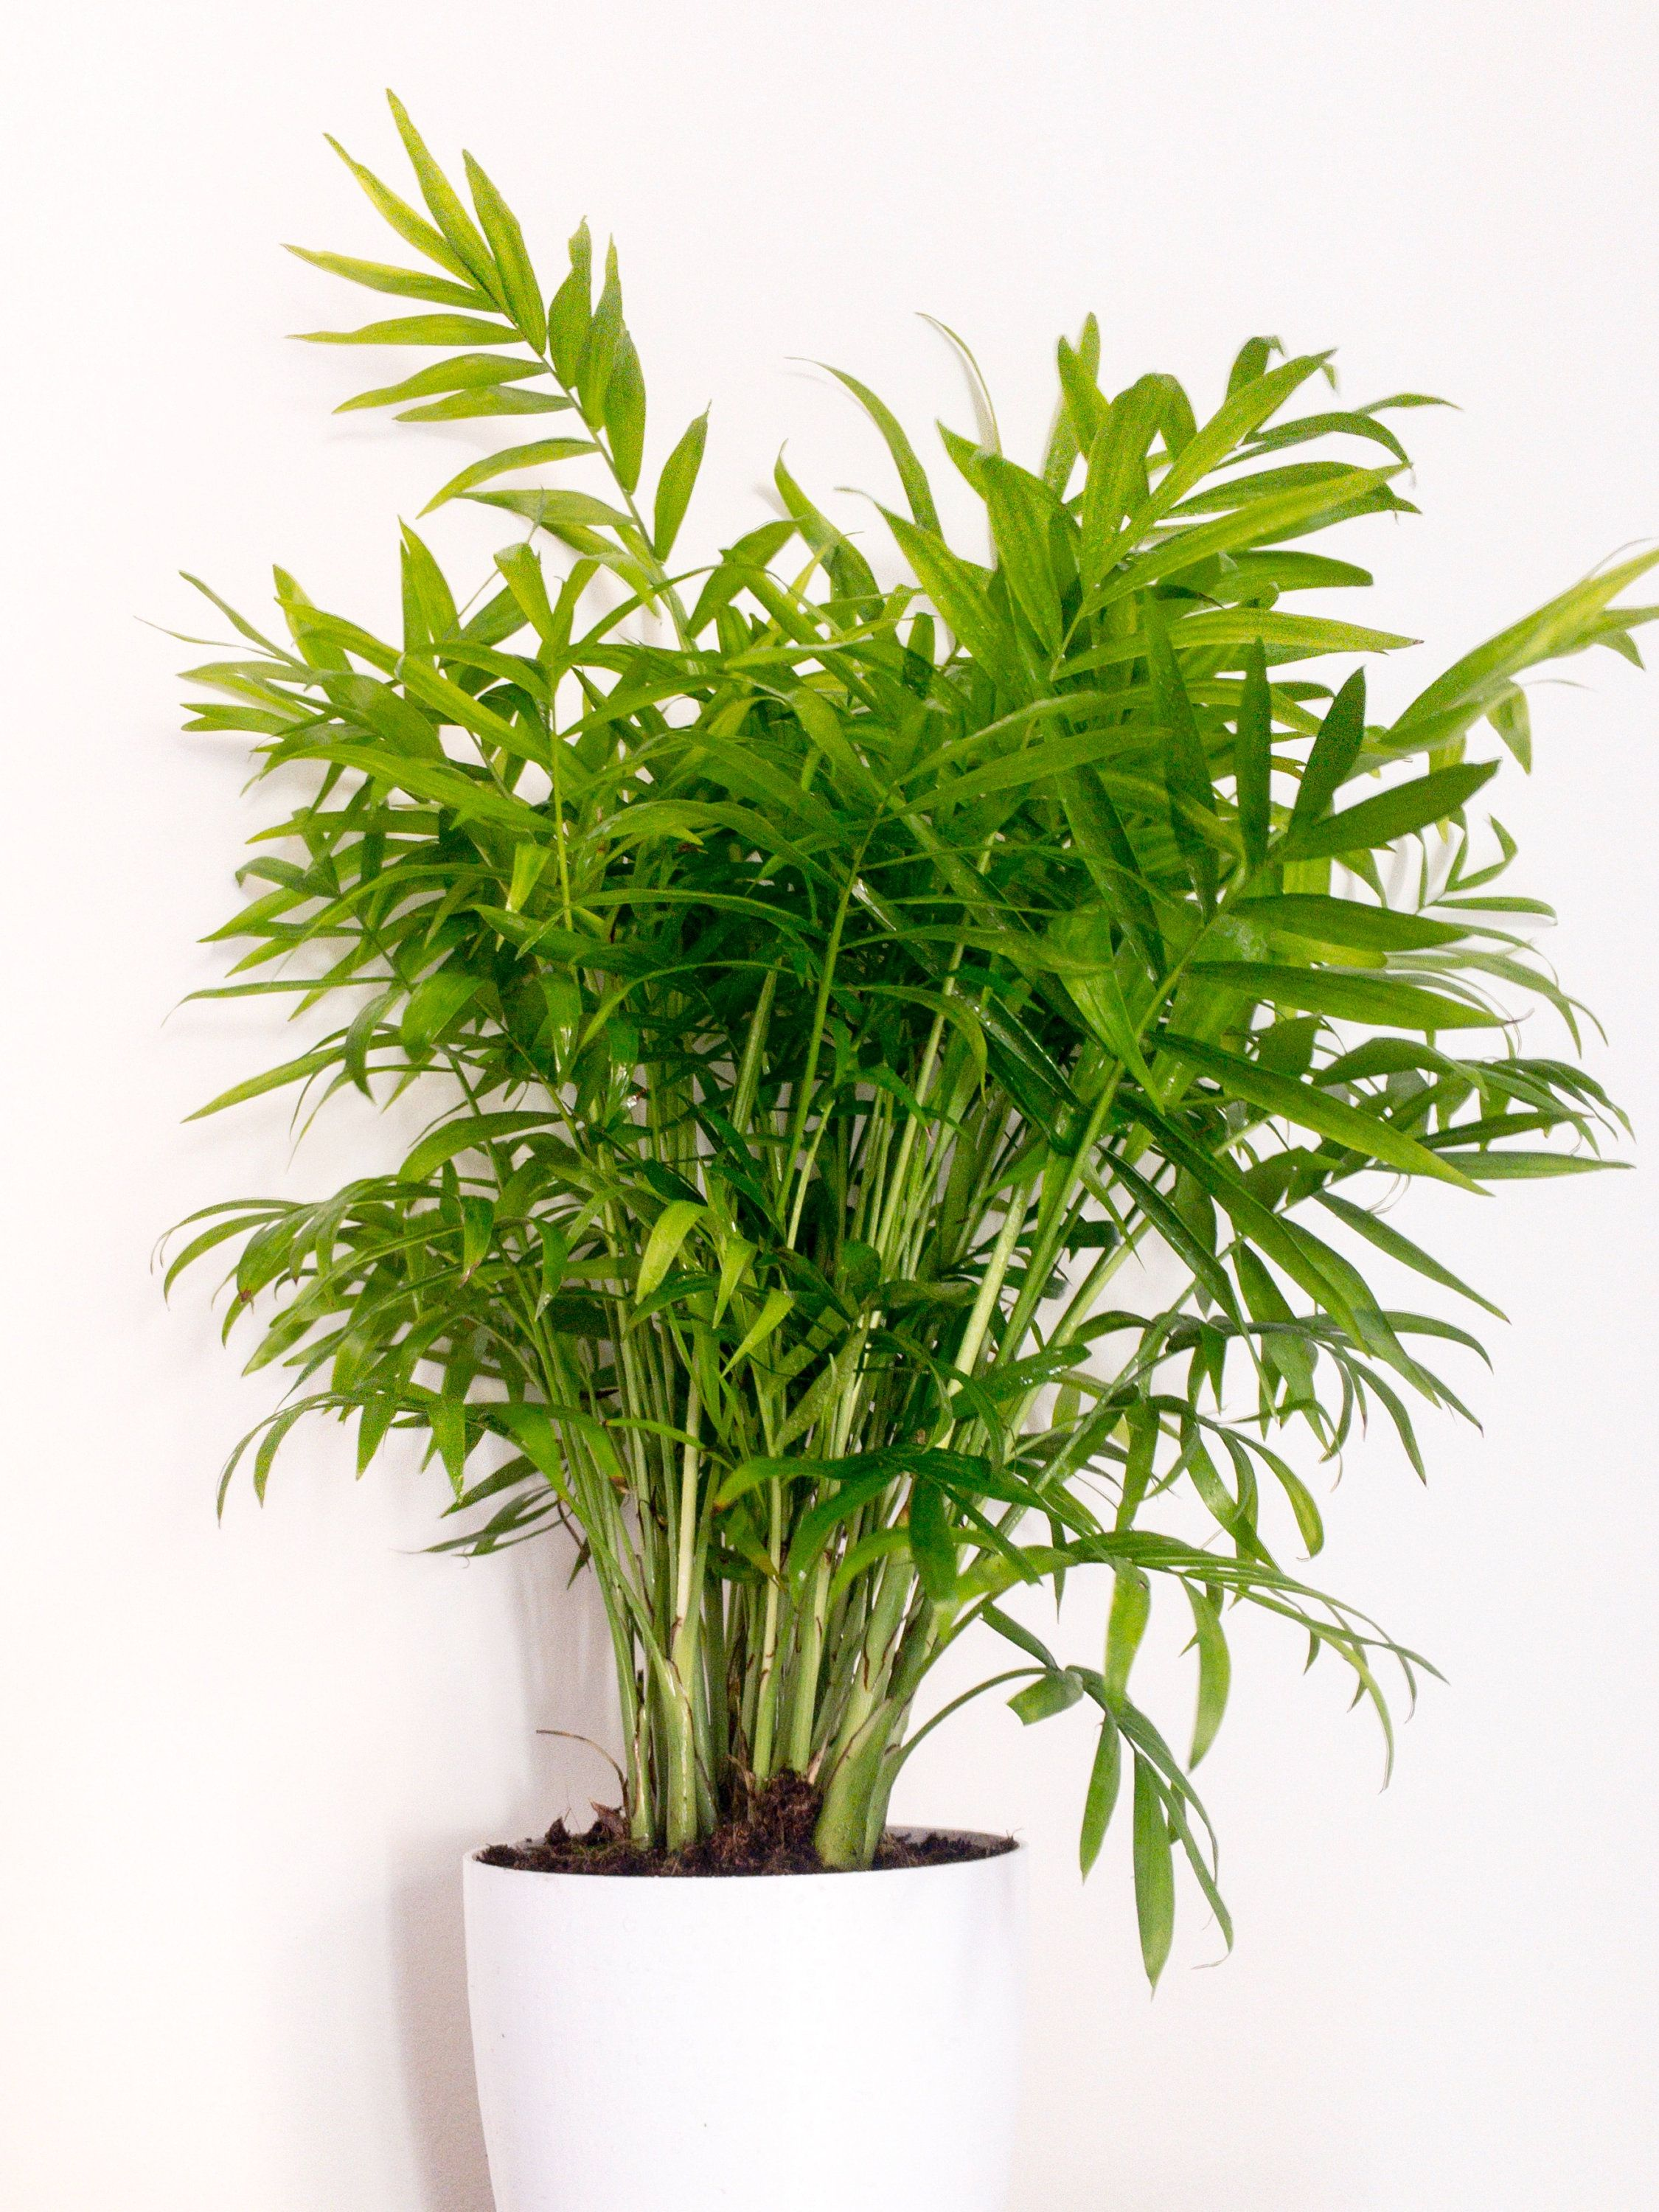 Grown Golden Cane Palm (Areca Palm) Air Purifying Indoor